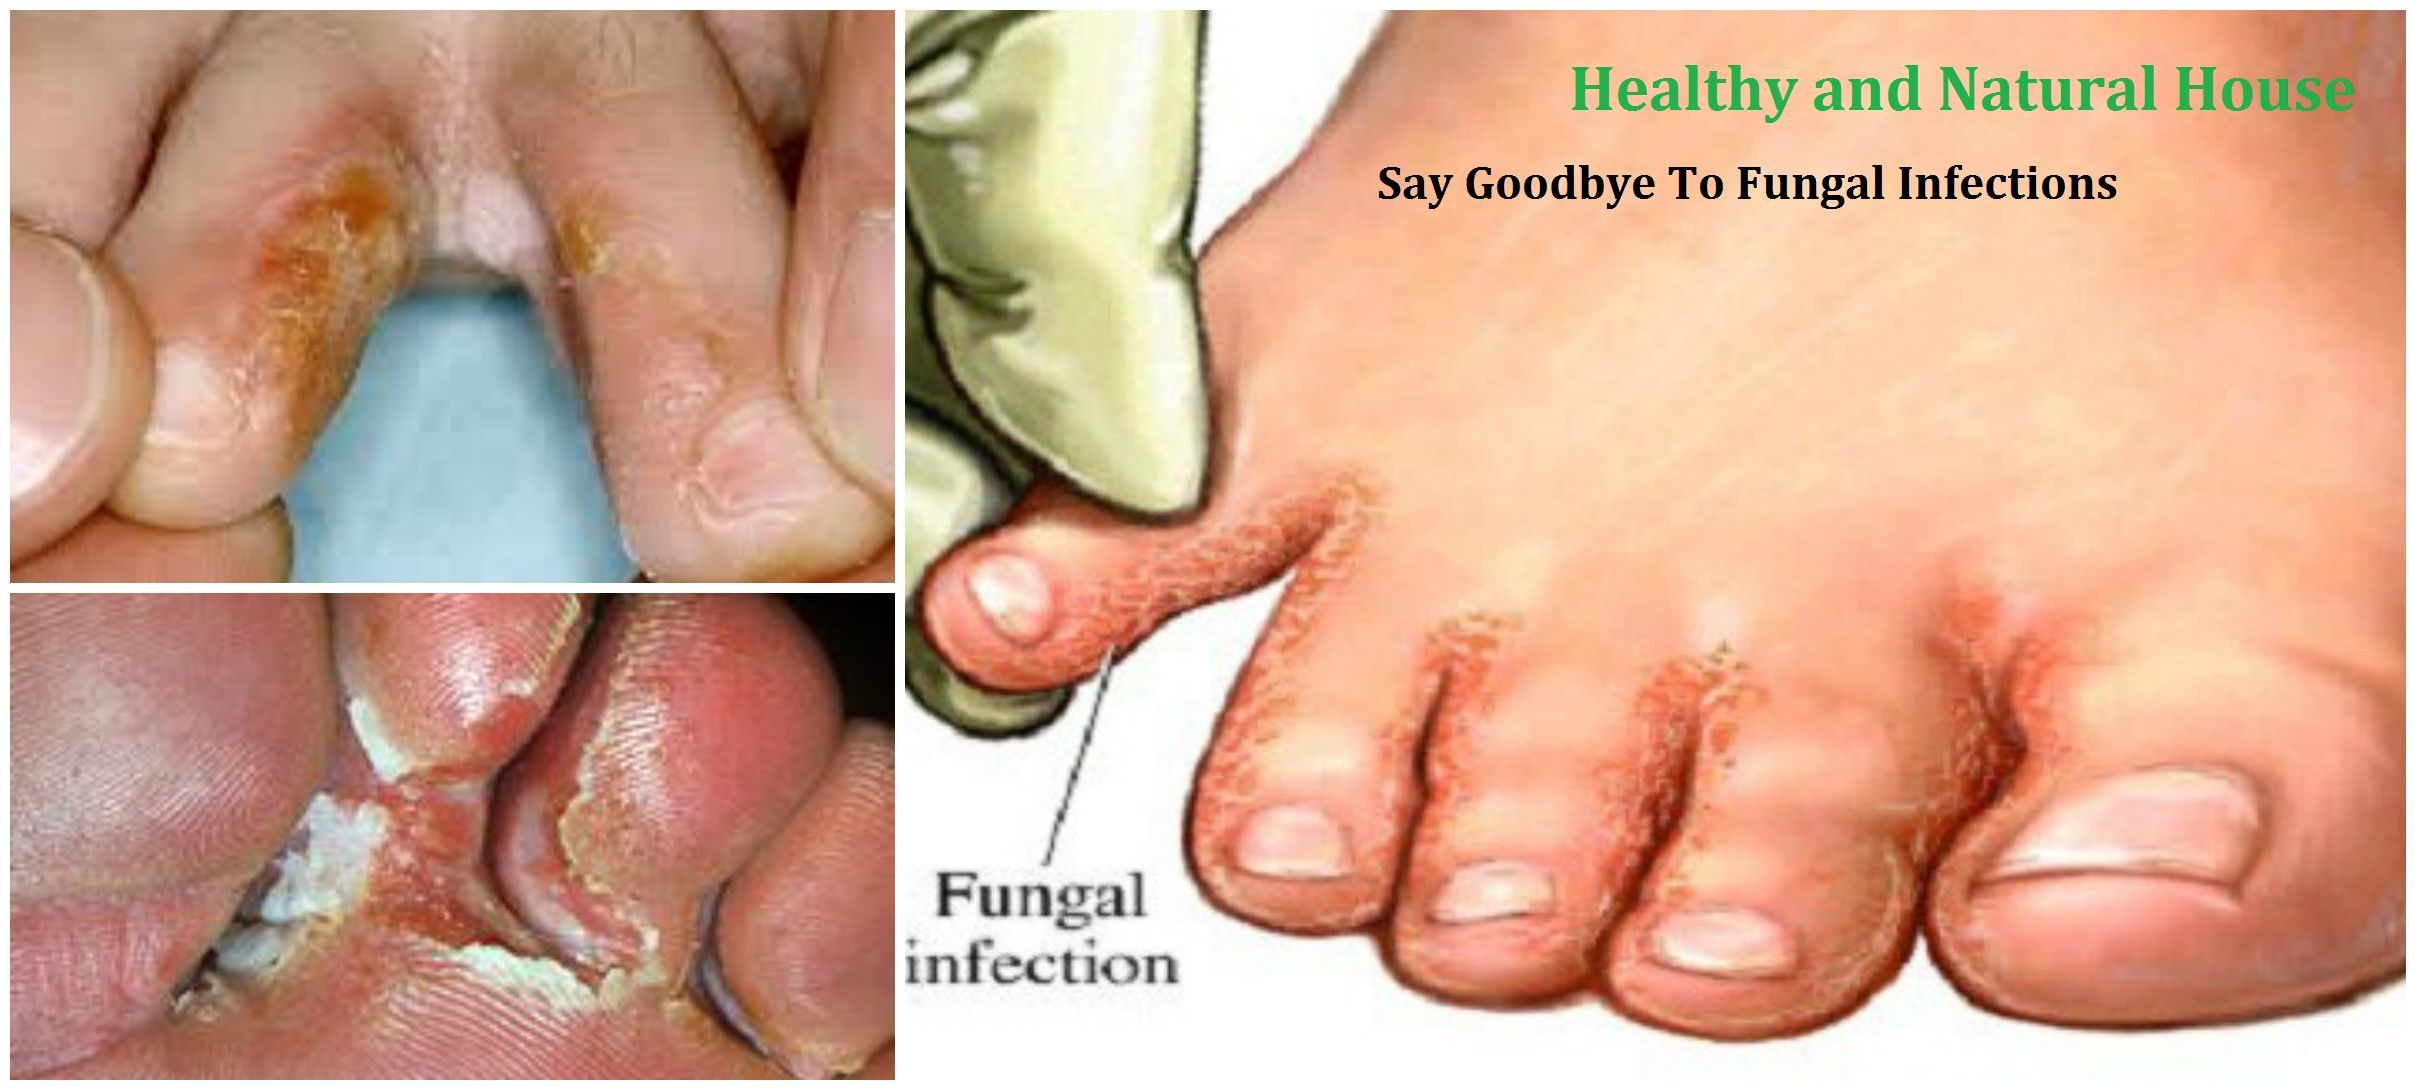 Get rid of fungal infection very easy- just soak your feet in this ...